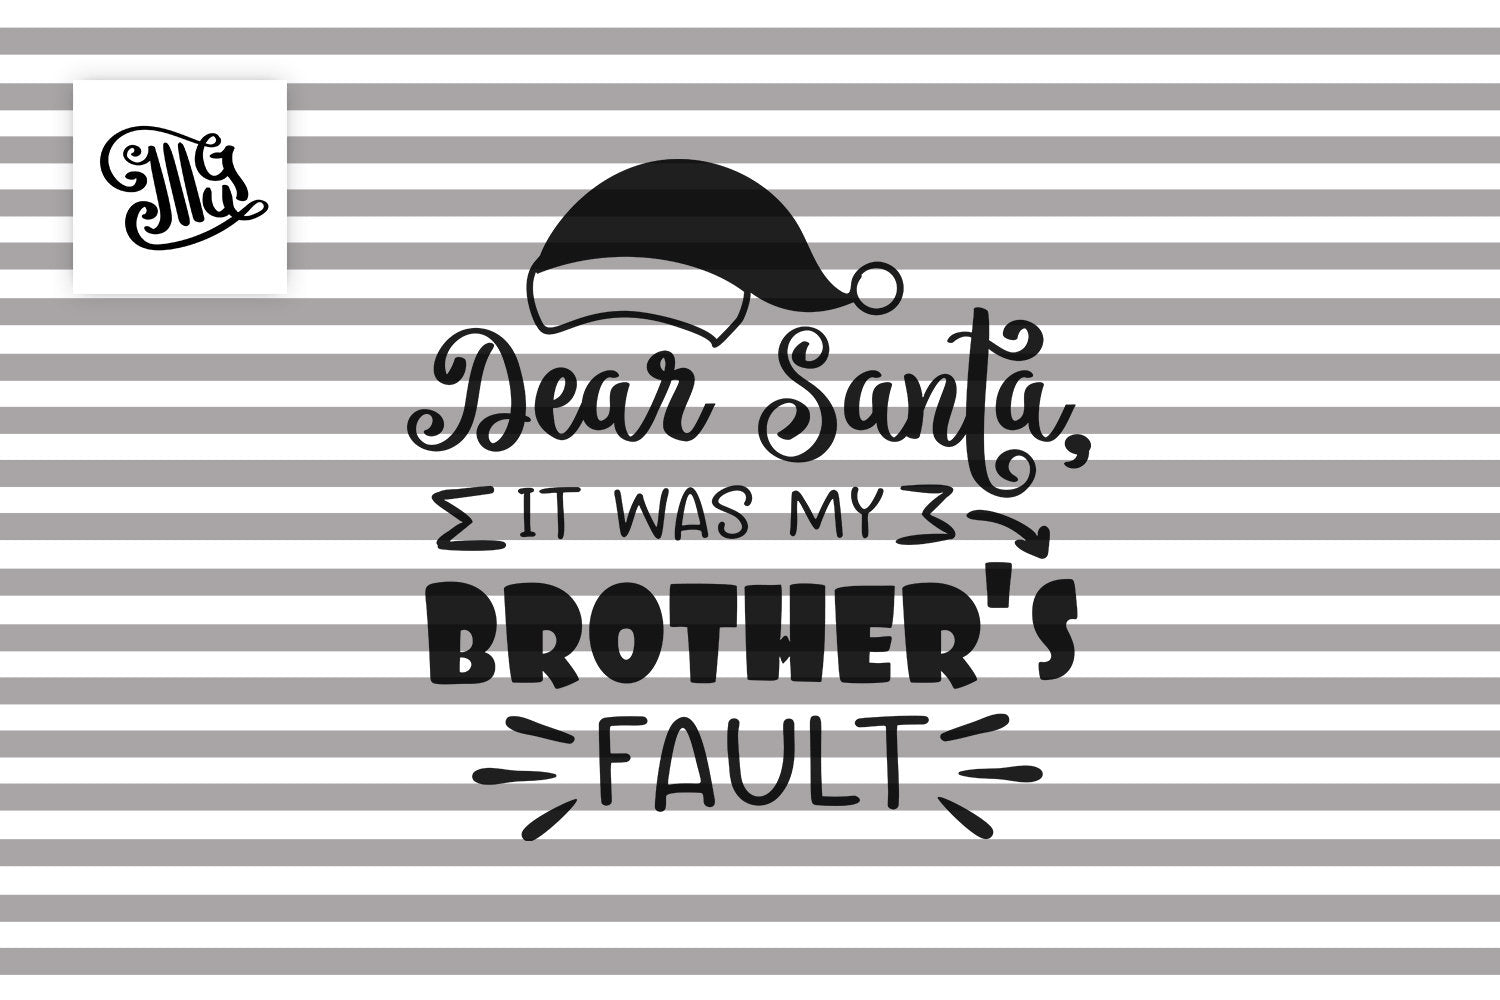 Dear Santa it was my brother's fault svg, Christmas sister svg, funny Christmas kids svg, Christmas presents svg, Christmas svg, Christmas-by Illustrator Guru